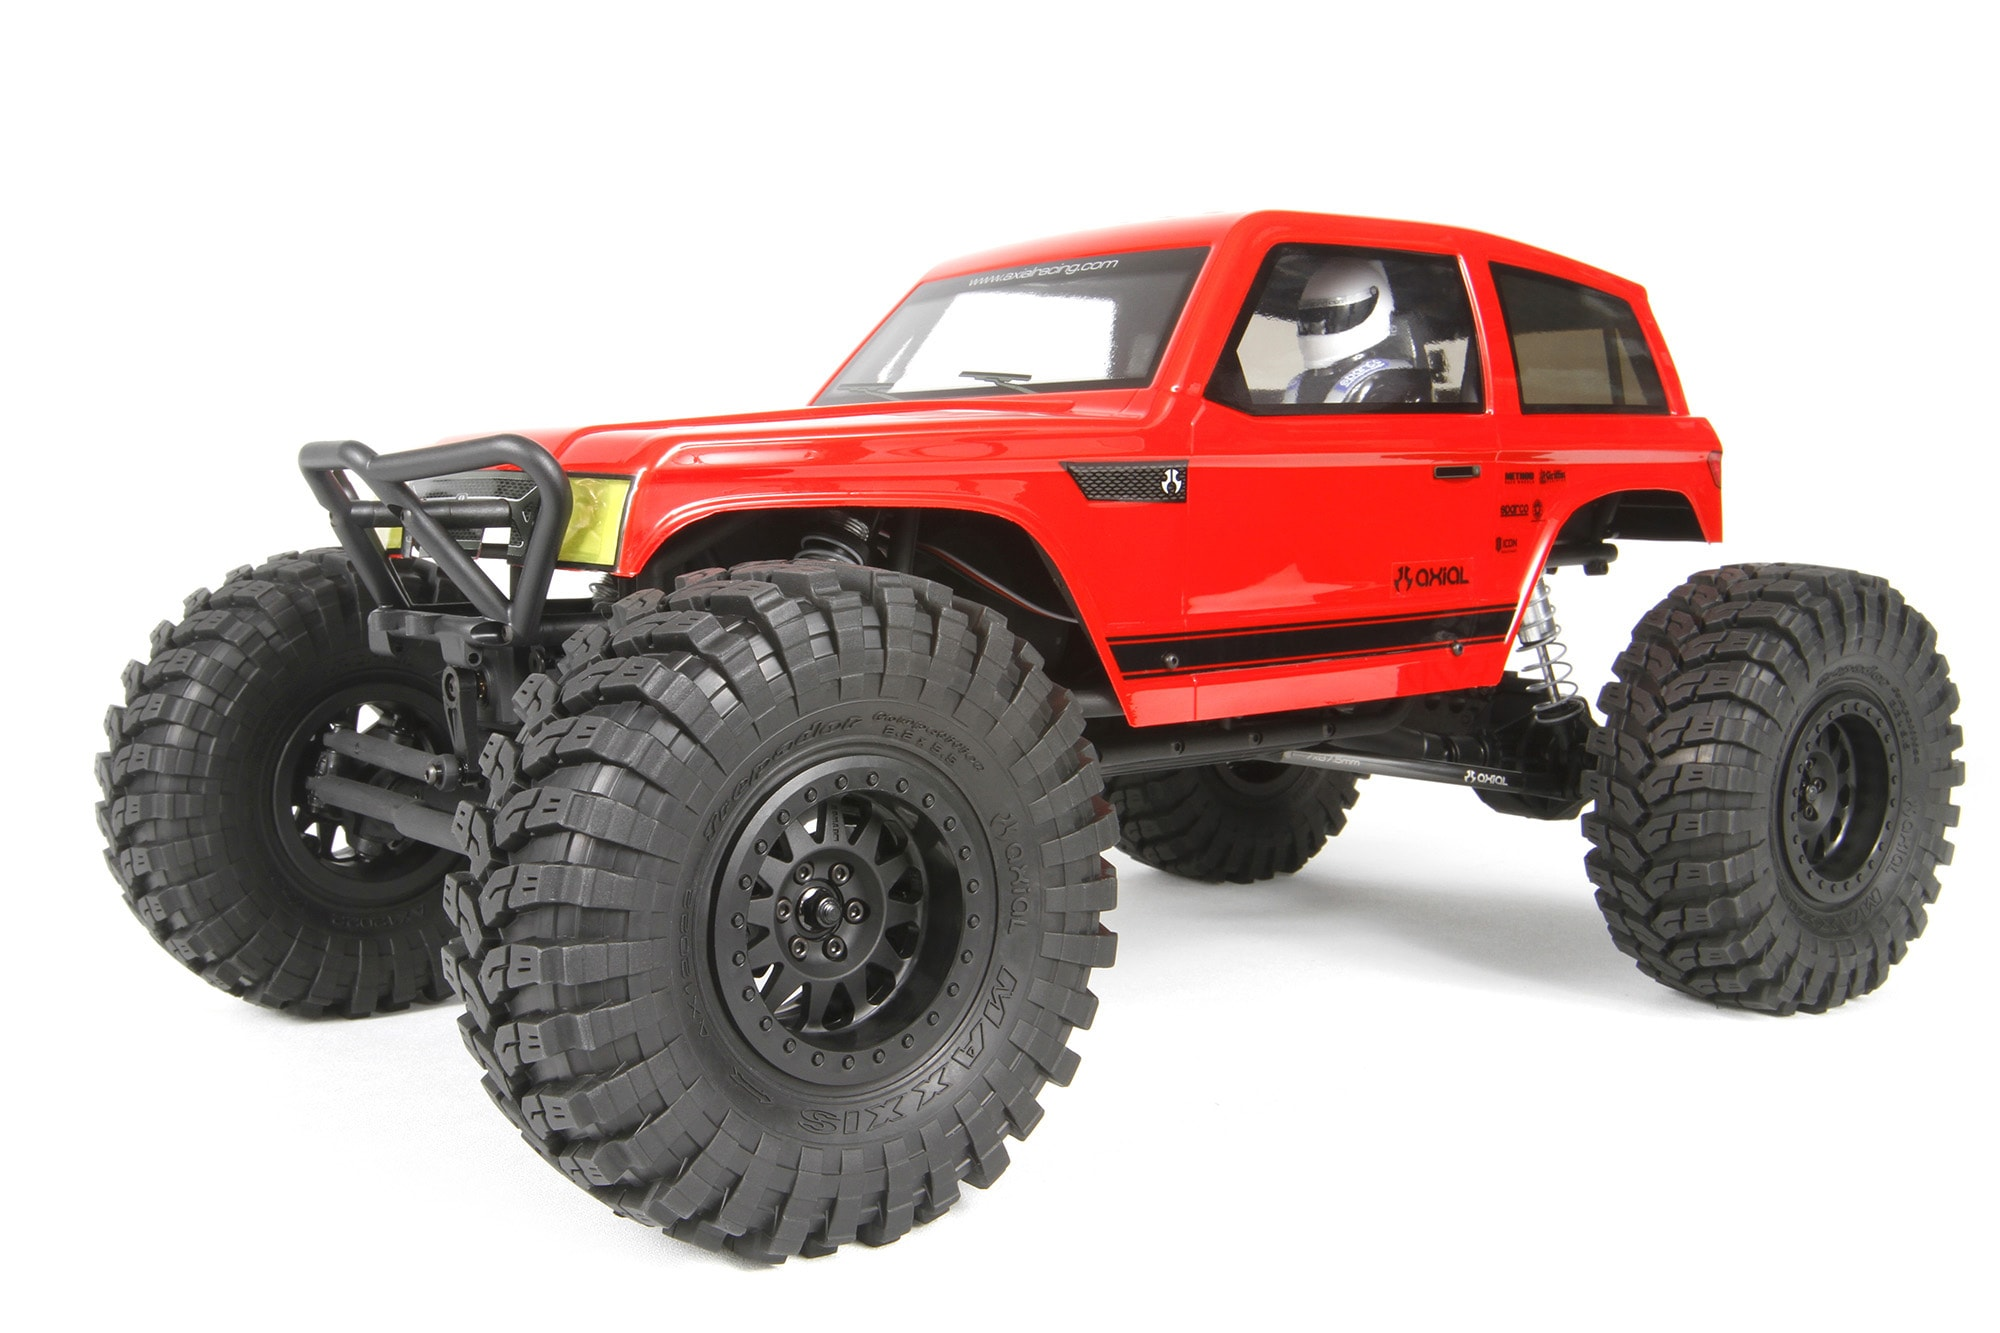 ... kit is priced at $329.99. Learn more about this kit at AxialRacing.com